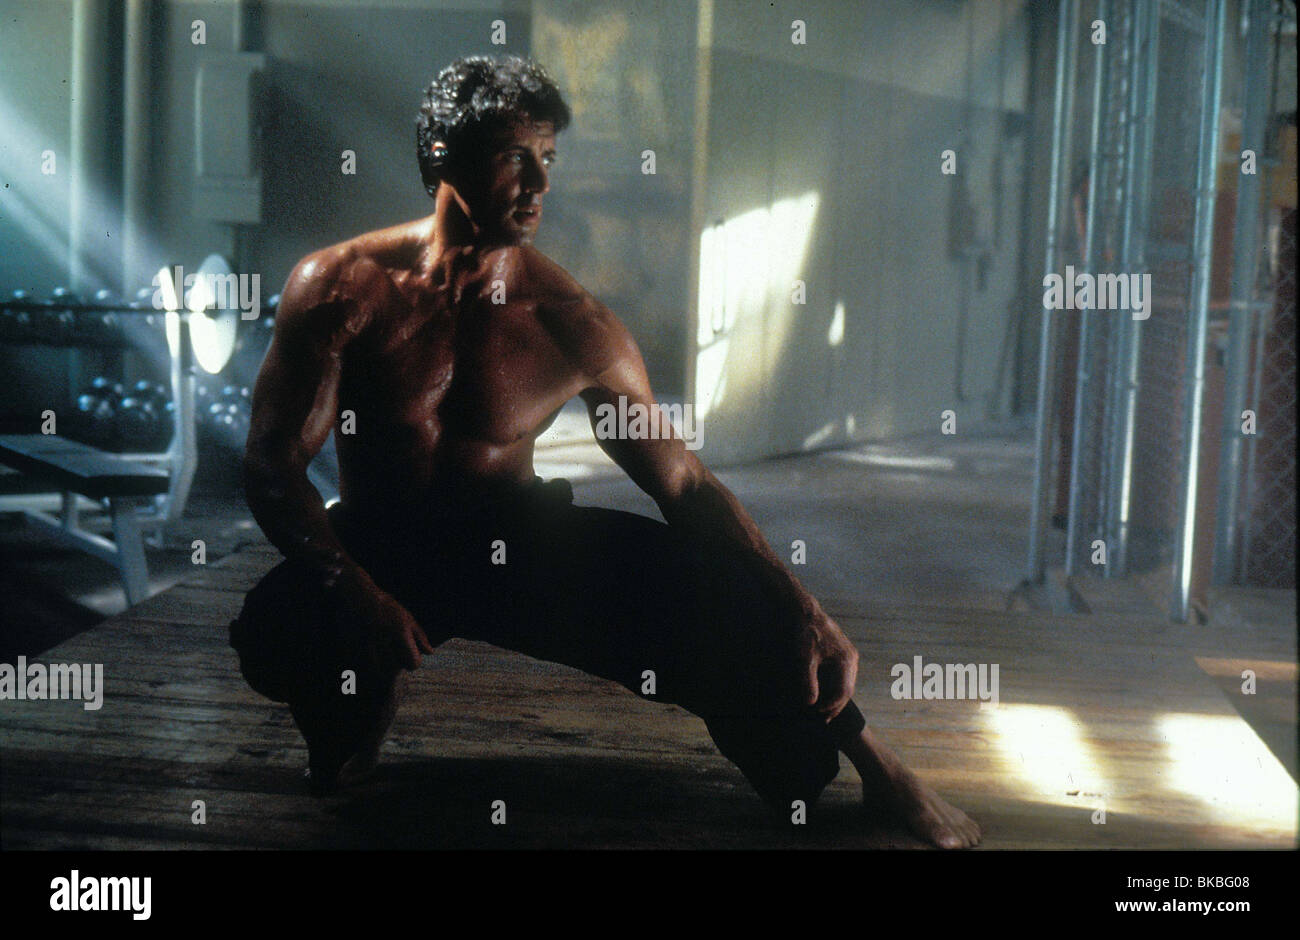 The Specialist 1994 Sylvester Stallone Sclt 069 Stock Photo Alamy